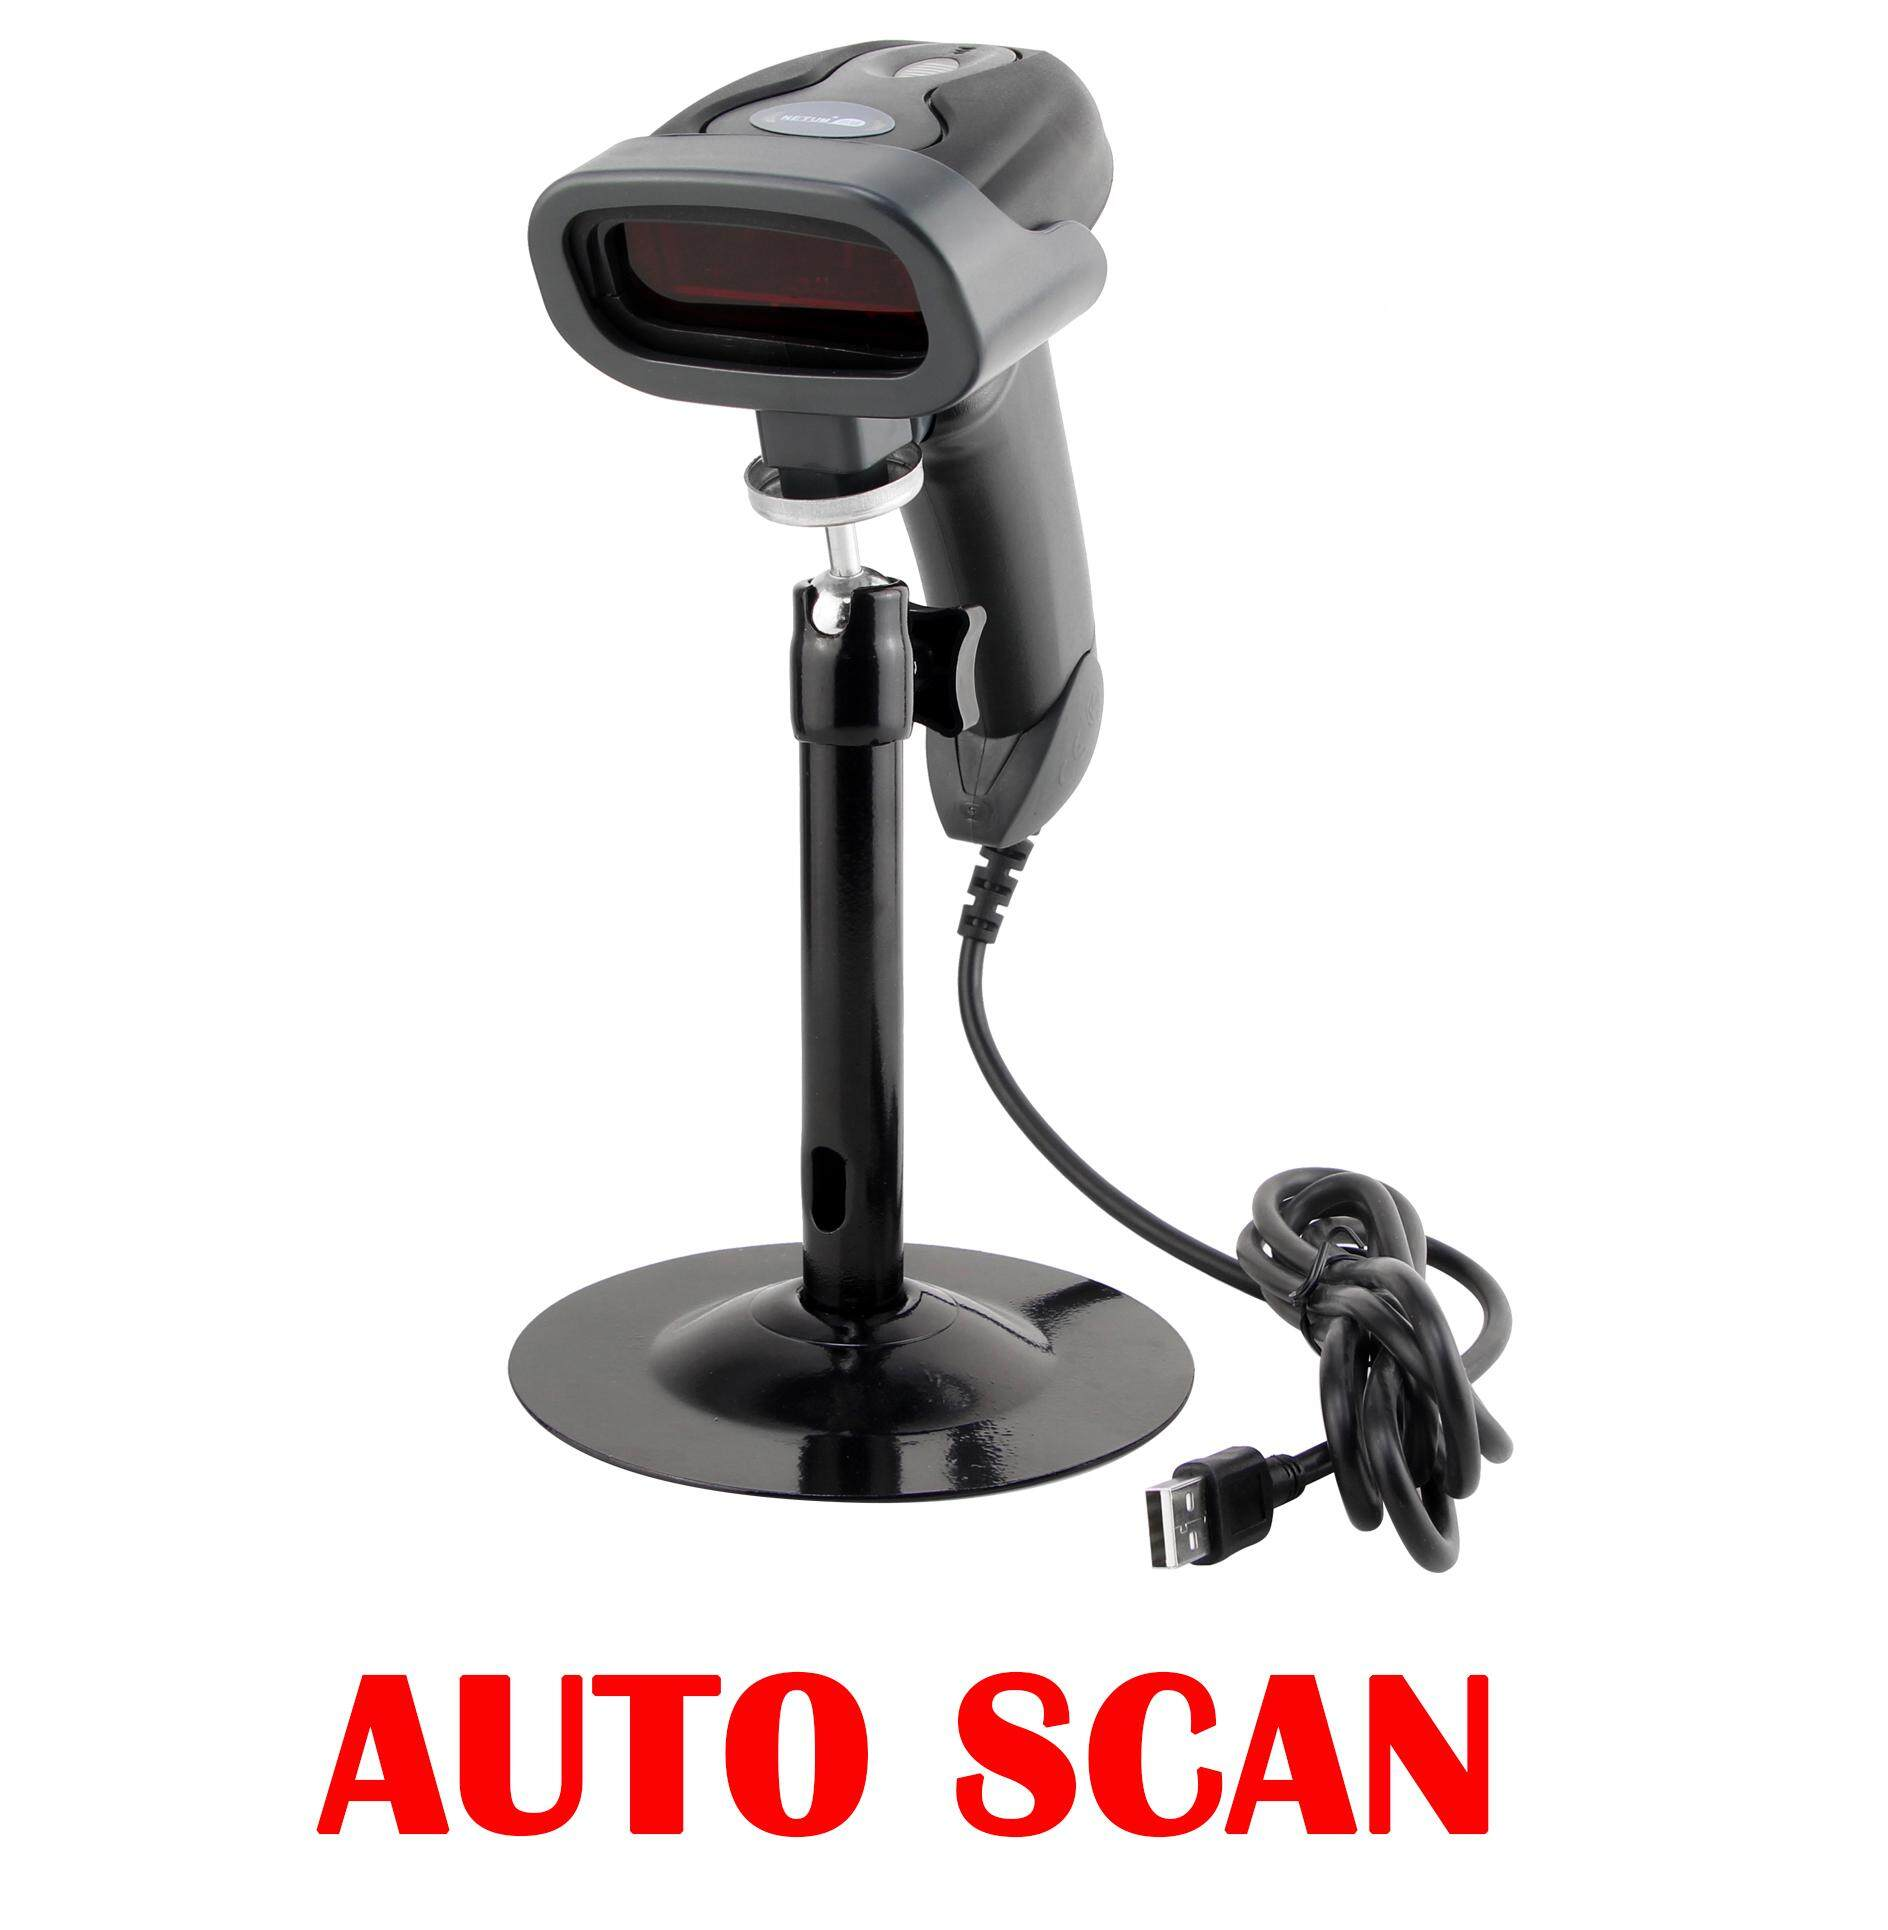 SSM Auto Scan Wired 1D CCD Bar code Reader Barcode Scanner For Supermarket